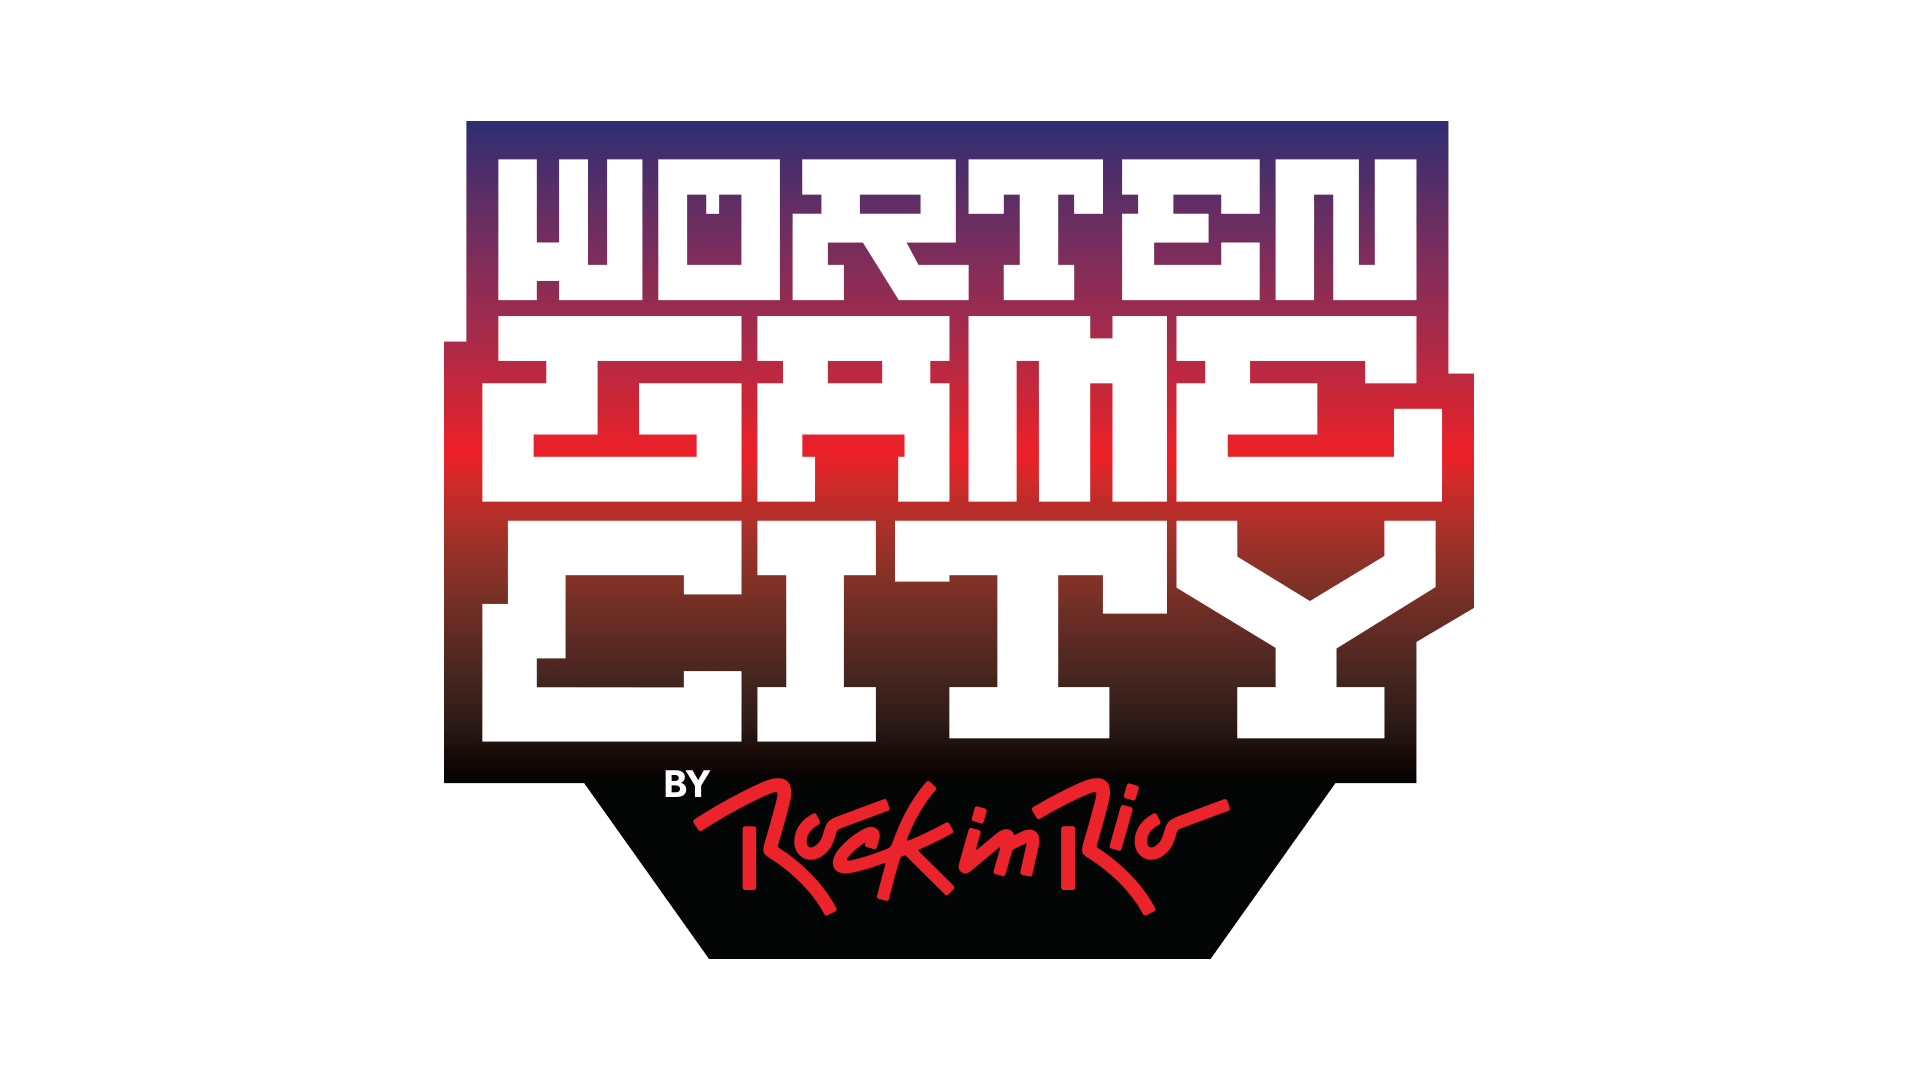 Worten Game City logo